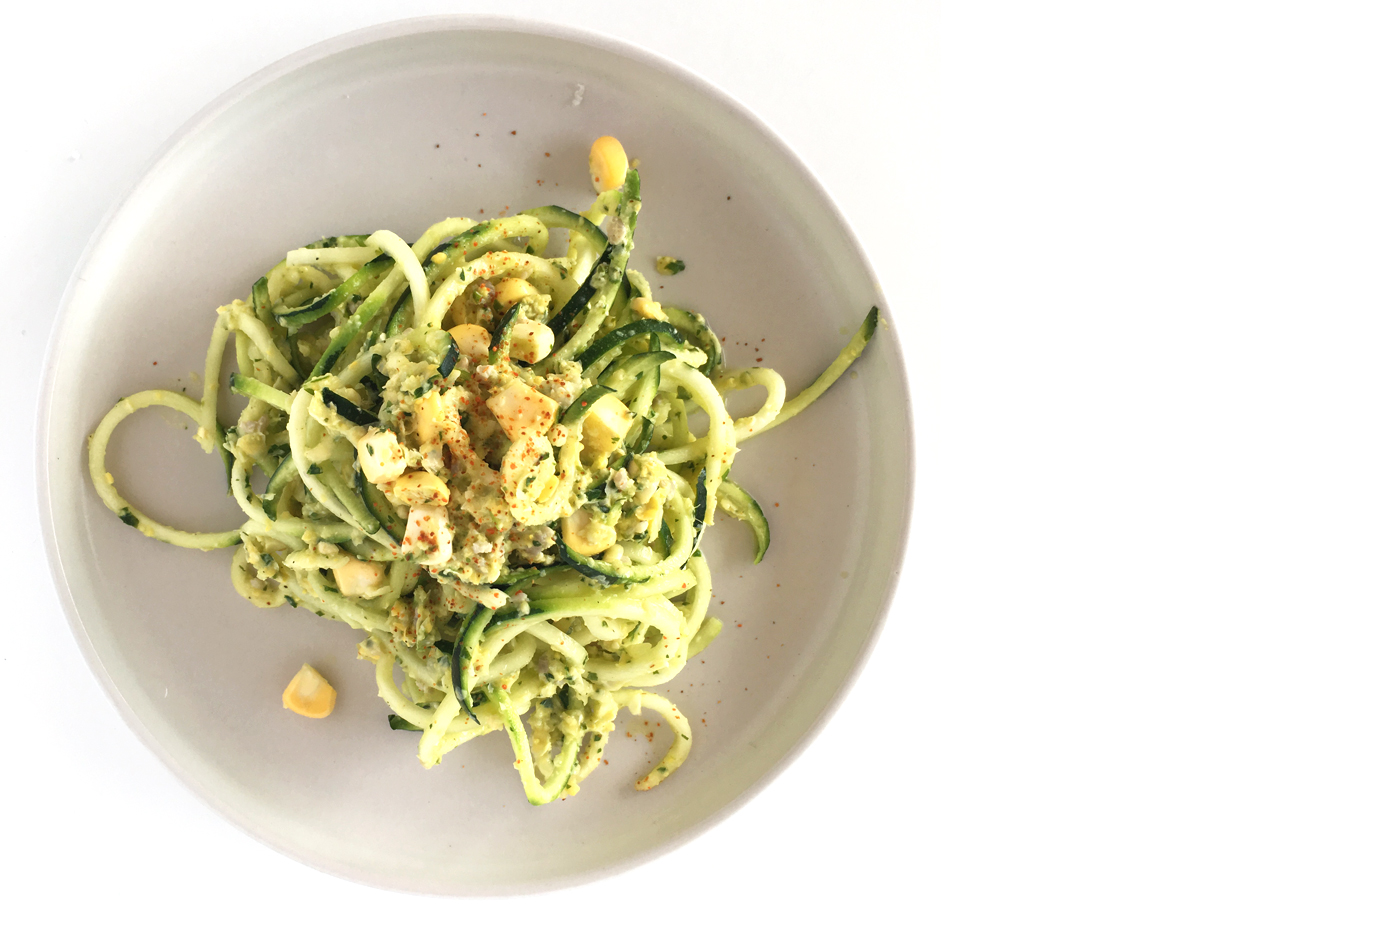 Click to share on Pinterest (Opens in new window) Click to share on Facebook (Opens in new window) Click to share on Twitter (Opens in new window) Click to share on Tumblr (Opens in new window) Zucchini pasta with sweet corn cilantro pesto